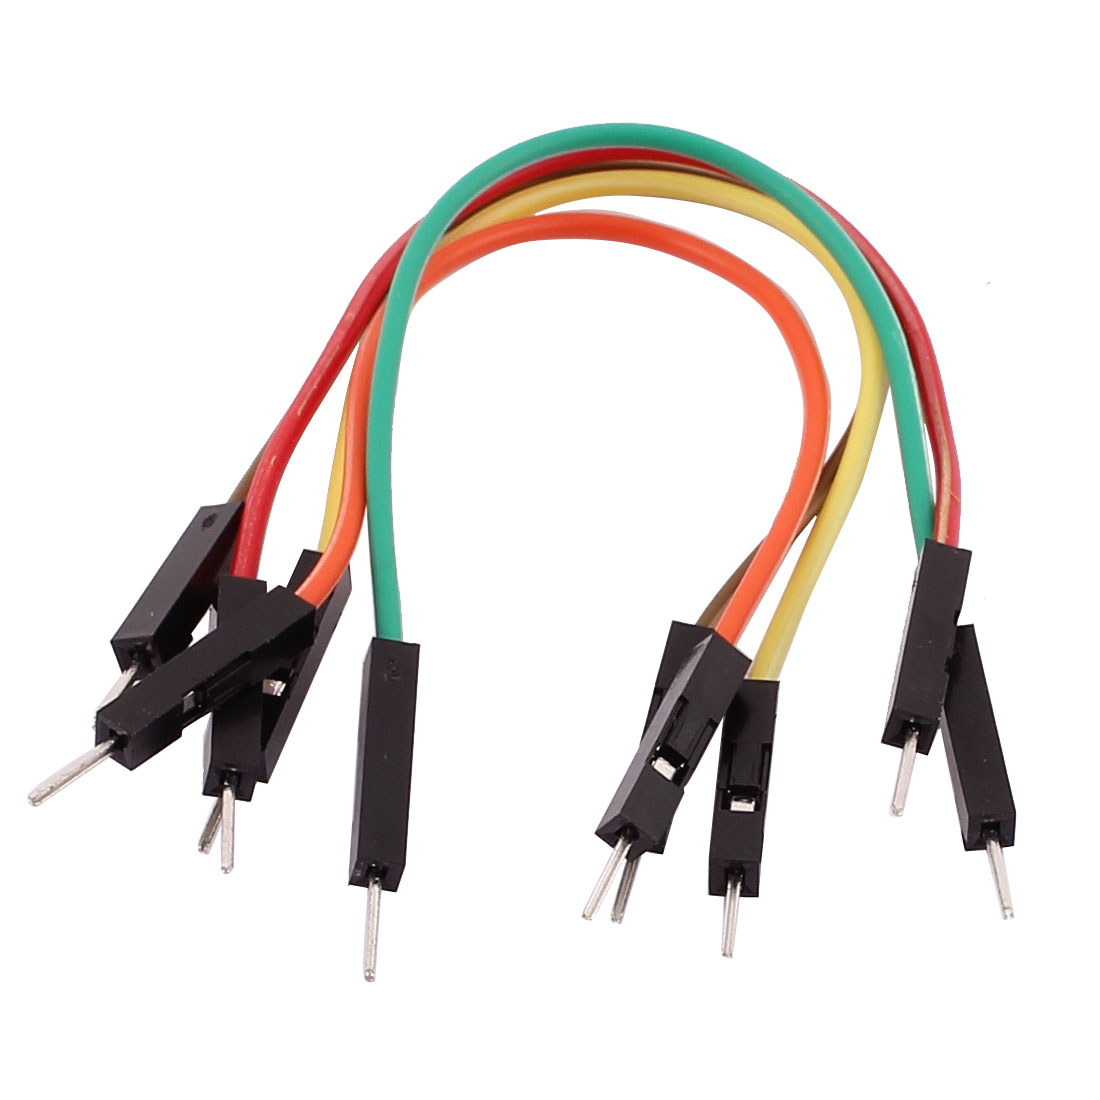 5PCS 2.54mm Pitch 1P Male Breadboard Double Head Jumper Wire Cable 10cm Length